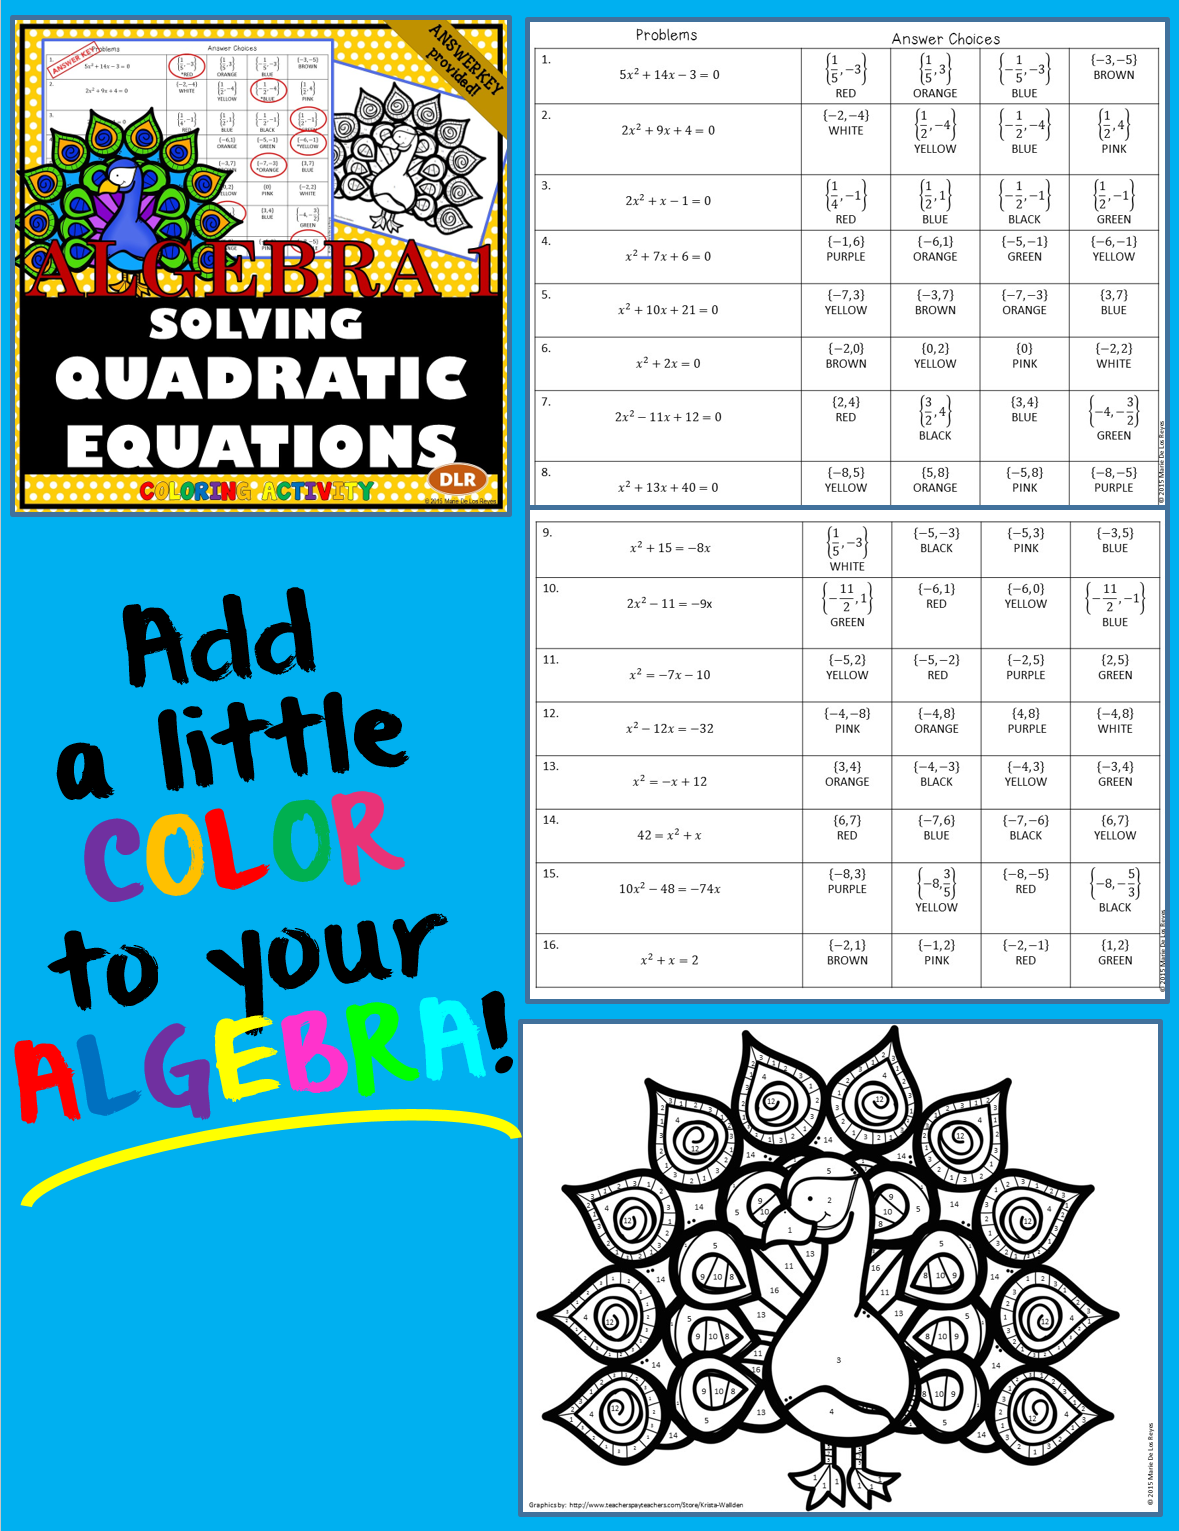 Solving Quadratic Equations Coloring Activity – The Quadratic Formula and the Discriminant Worksheet